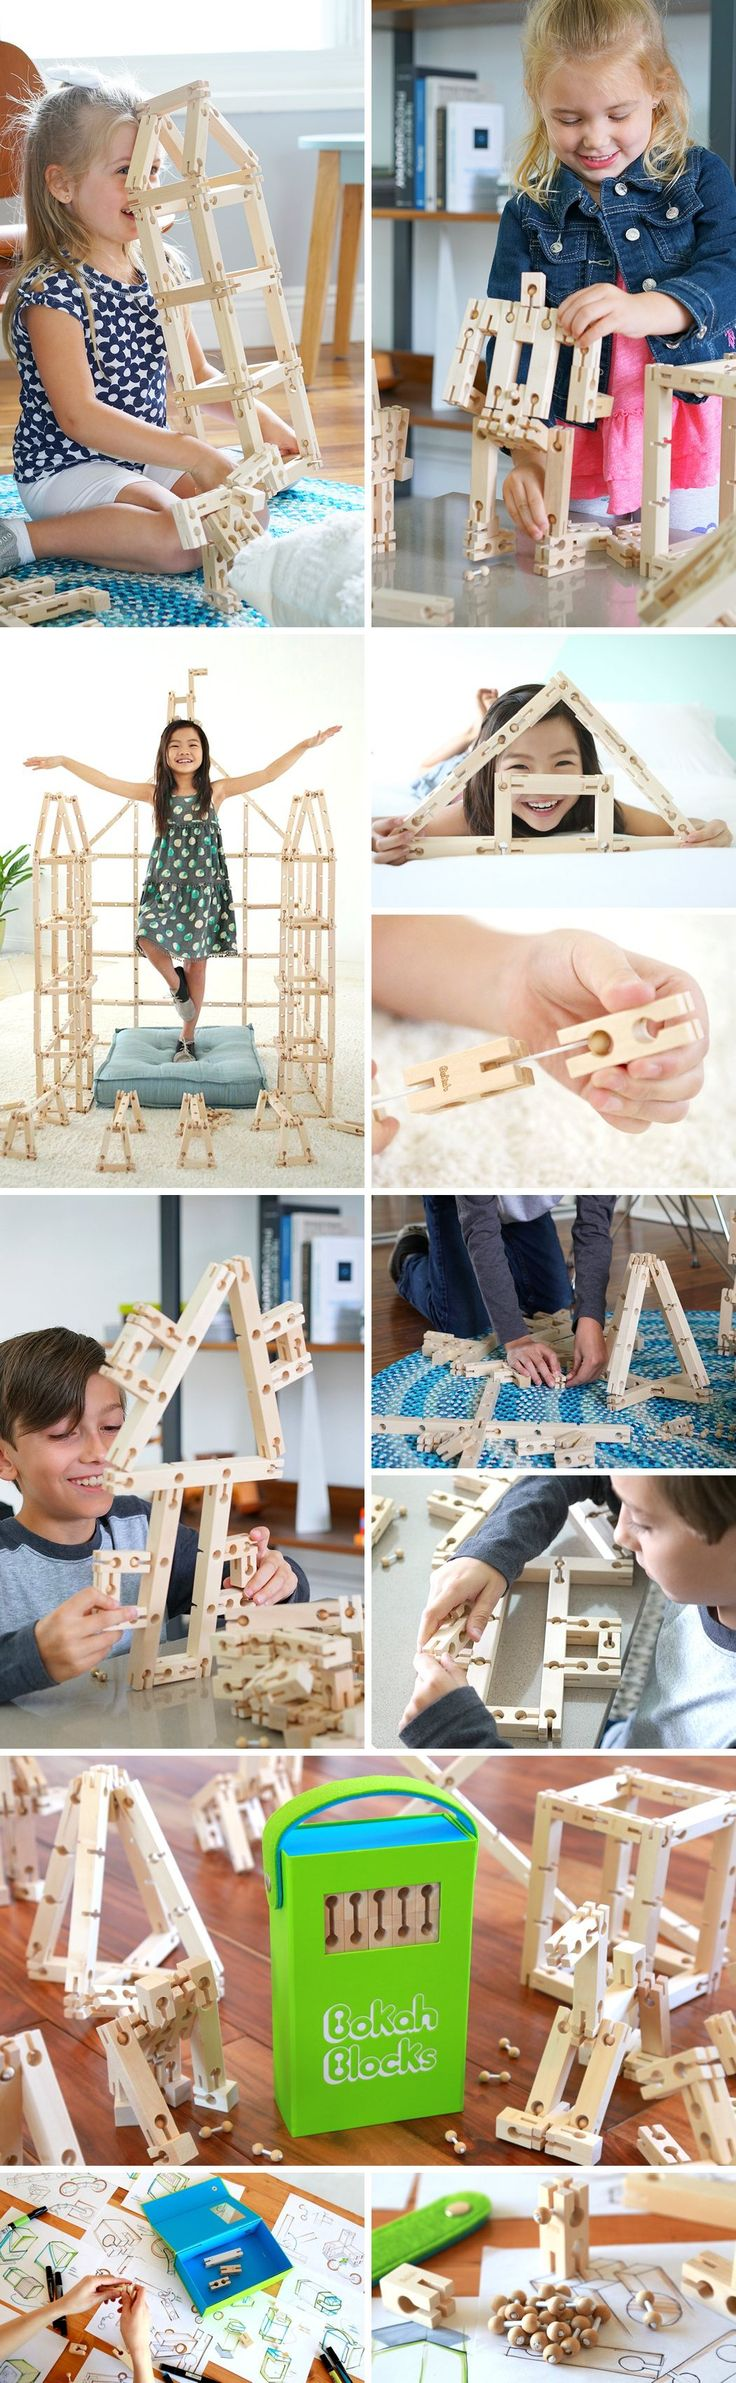 The next generation wooden toy is here! Think of it as 3D tools to let a child's imagination run wild. Designed to be like Jenga meets Lego meets Meccano, the Bokah Blocks is as free spirited as the child itself, allowing kids to build whatever their hearts desire, while even allowing their creations to be robust yet flexible! Shop Now.